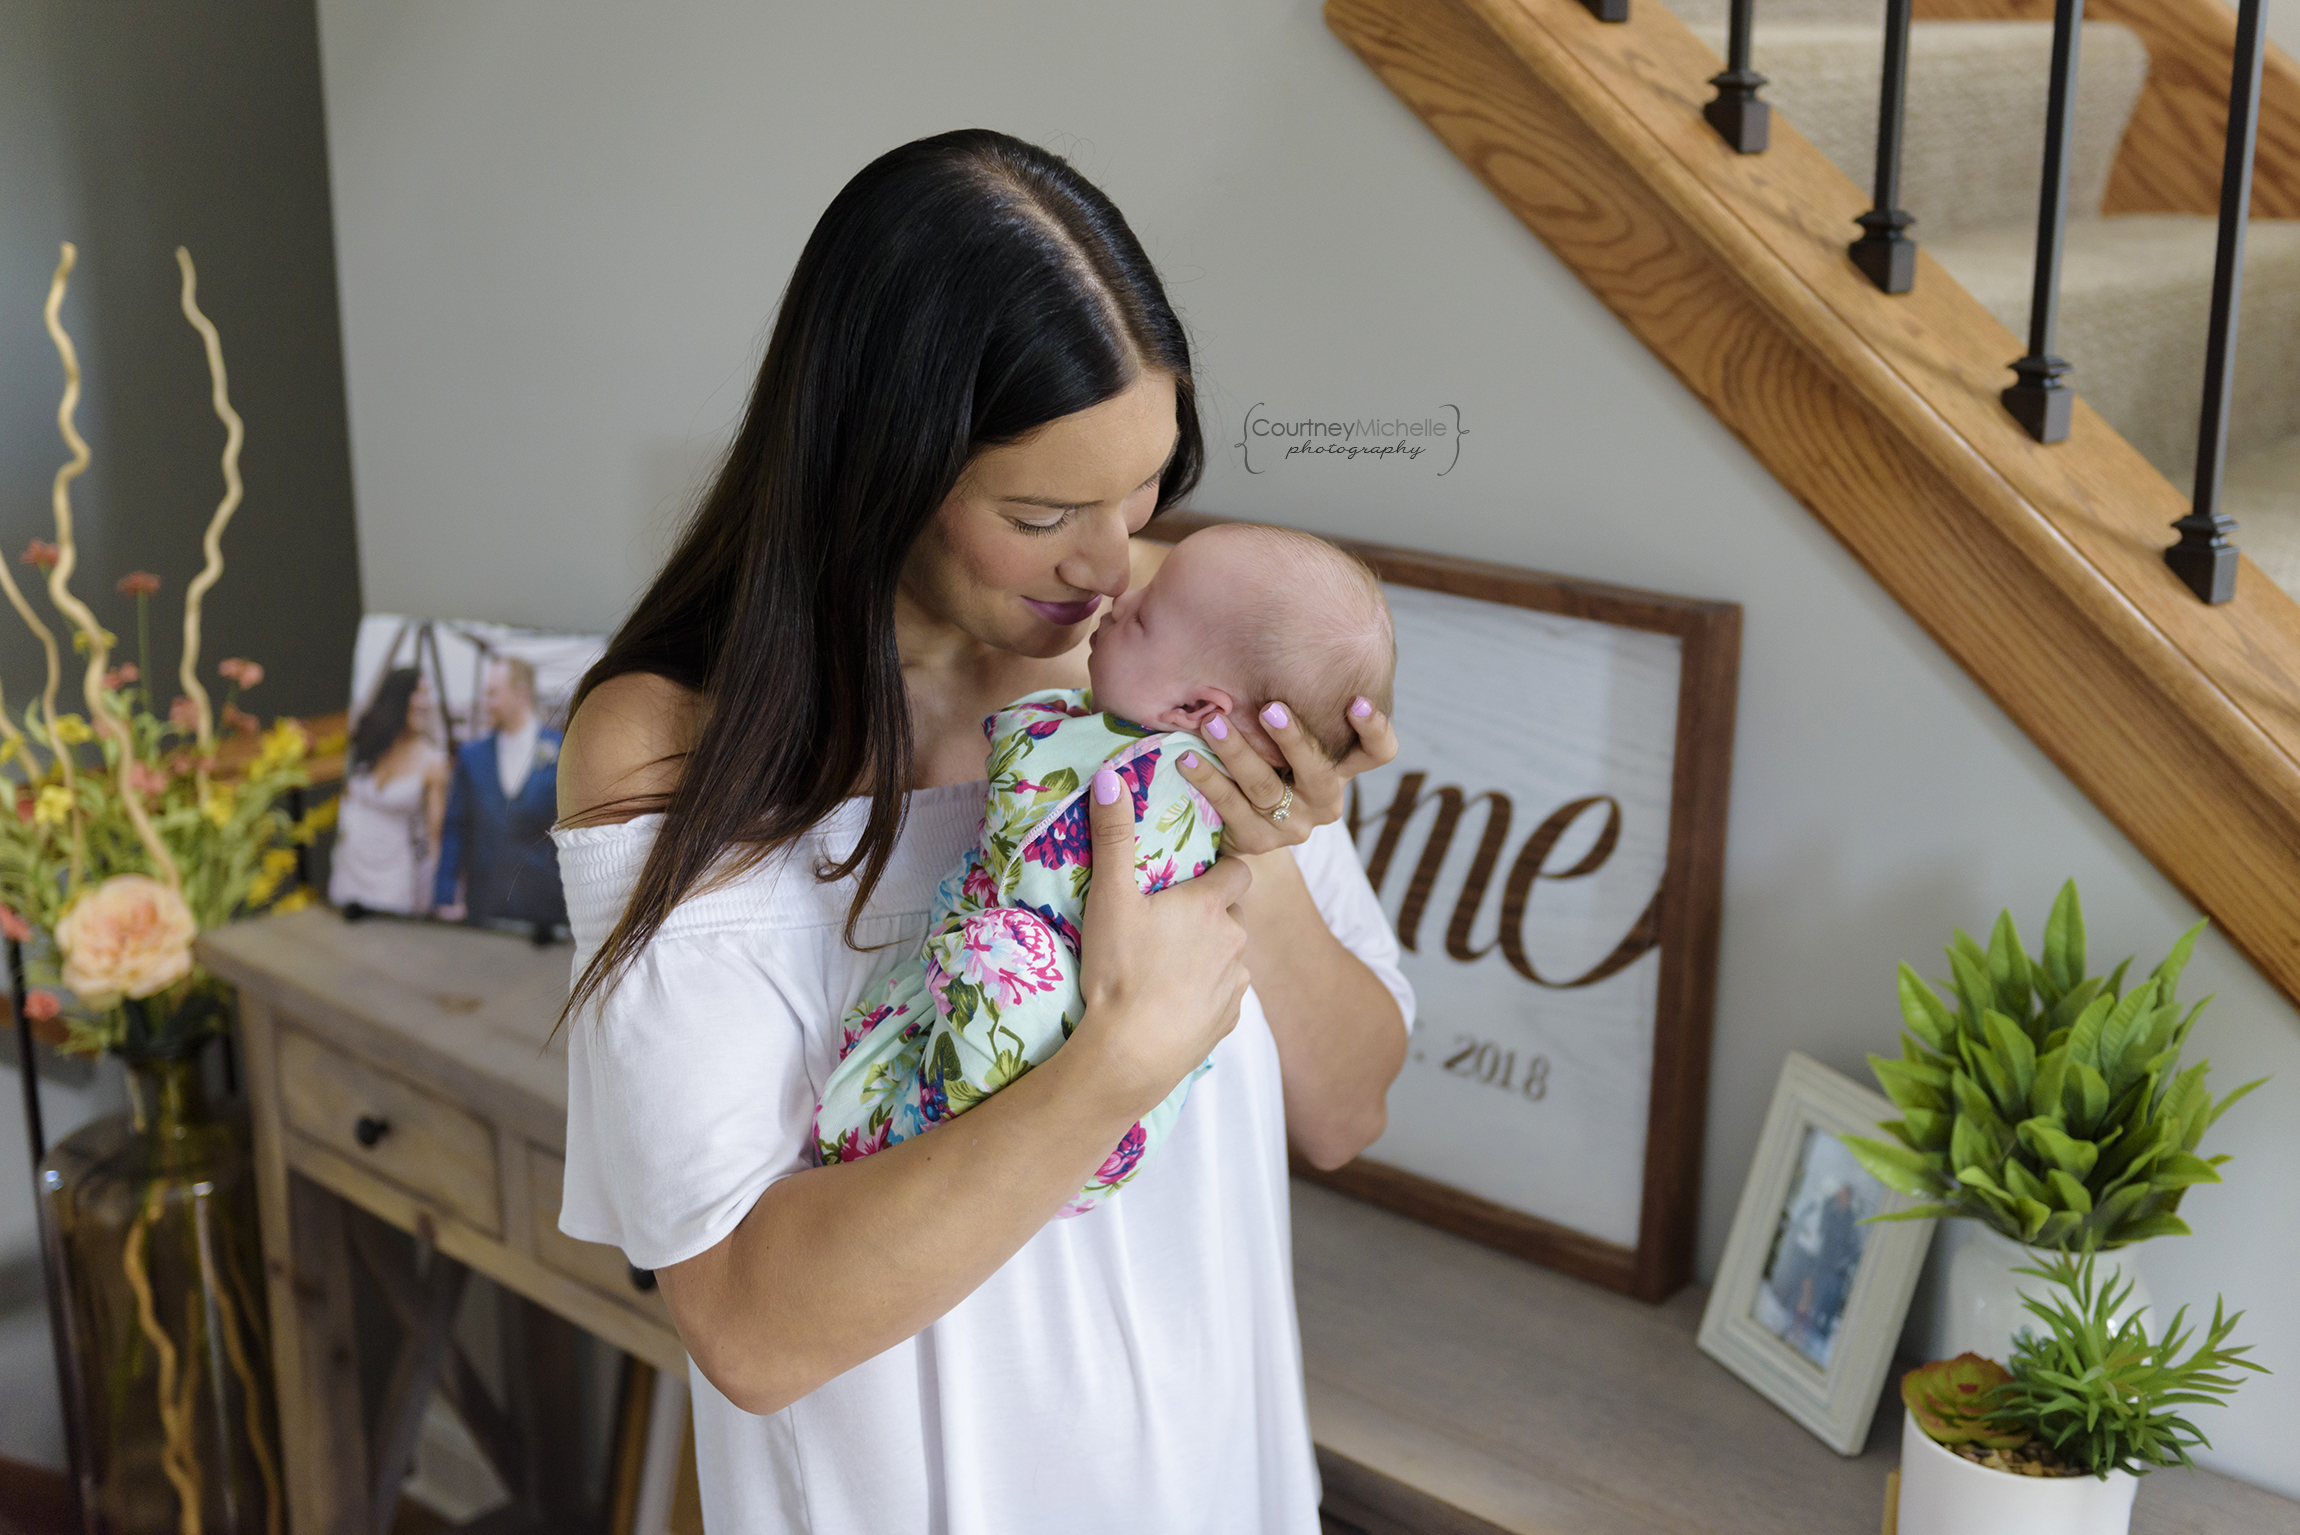 chicago-newborn-photographers-courtney-laper-lifestyle-session-mom-snuggling-baby-girl-COPYRIGHTCMP-Camille20190705-2786-61.jpg